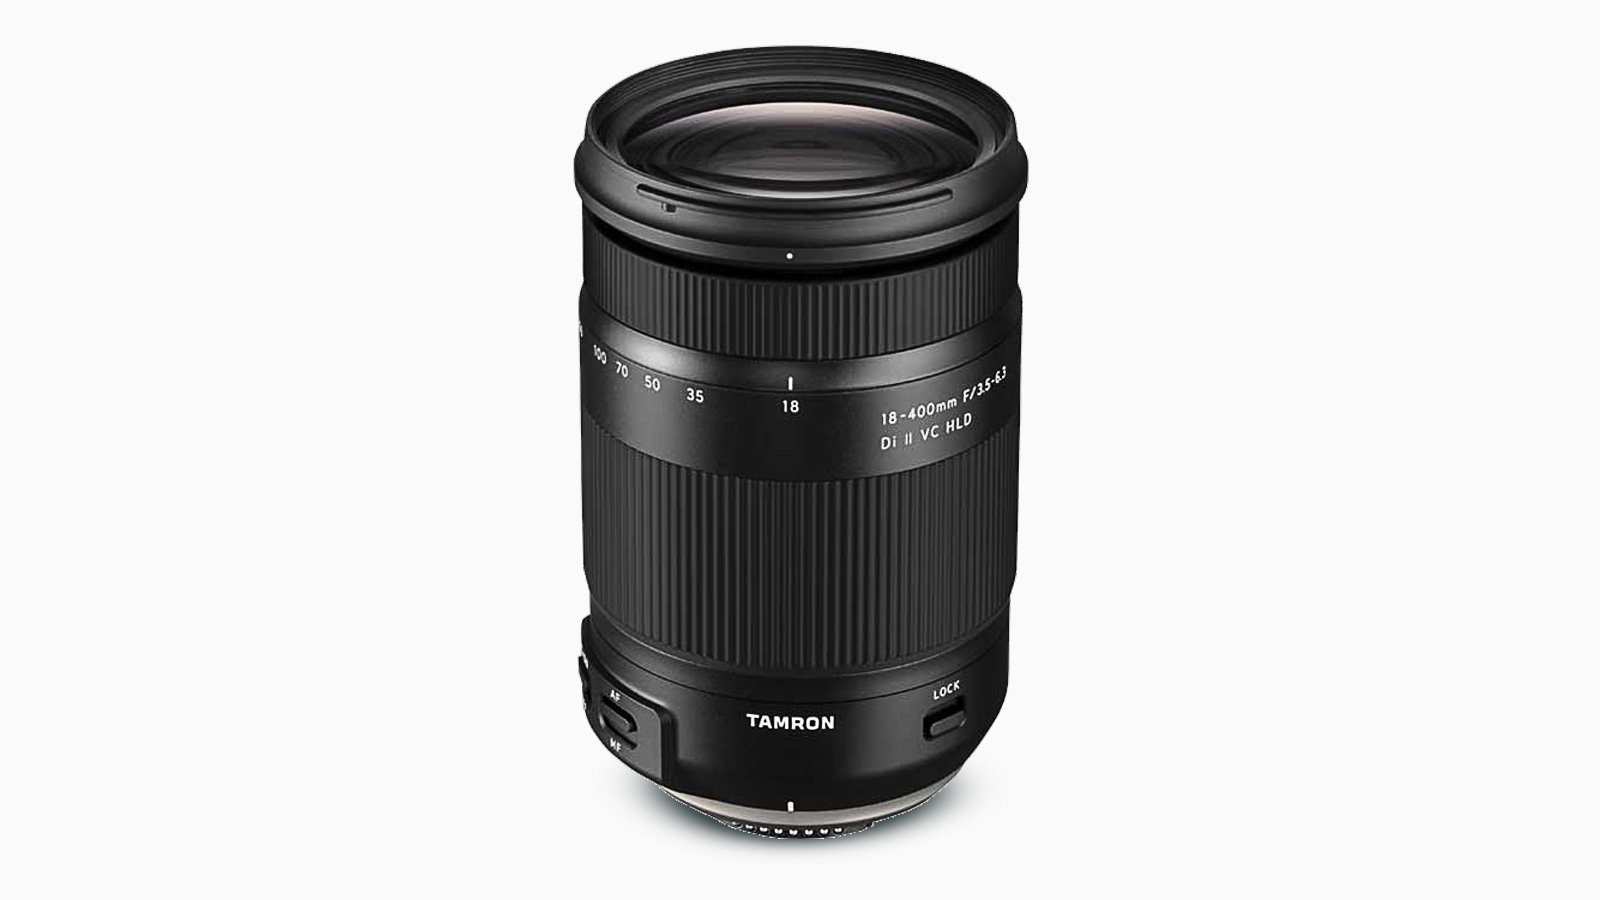 Tamron Introduces World's First 18-400mm Lens